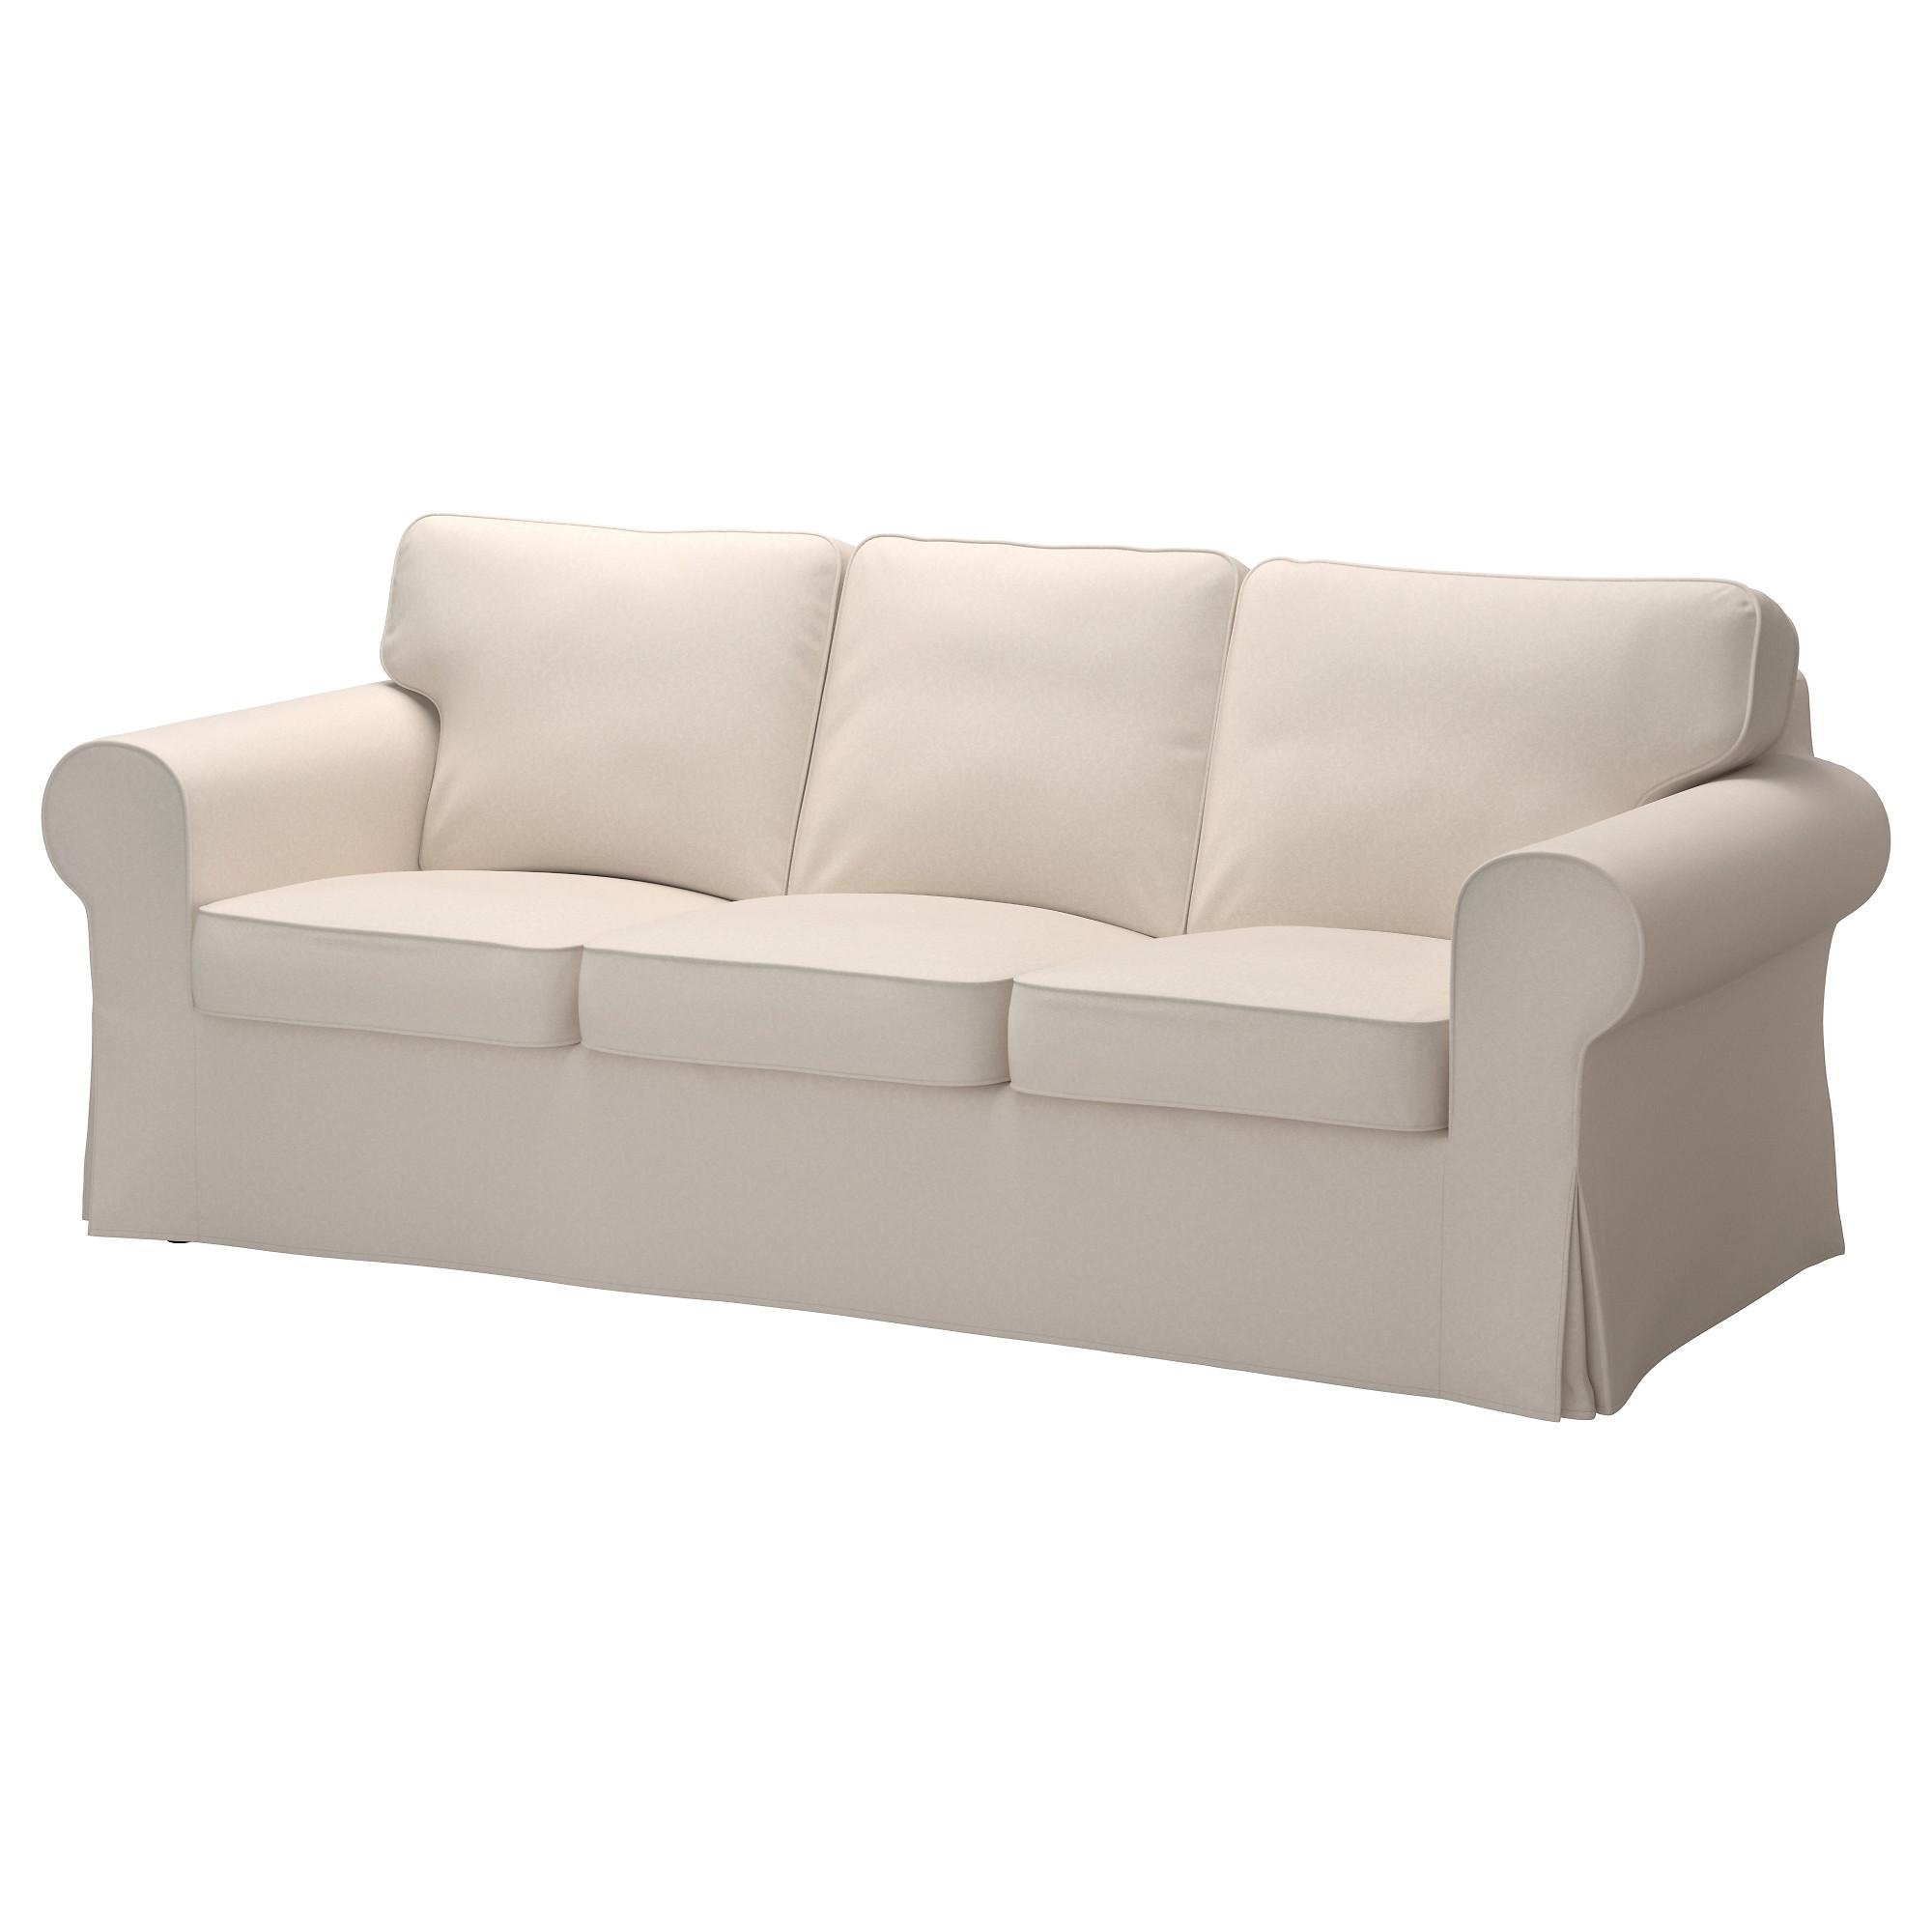 Ektorp Sofa – Lofallet Beige – Ikea Intended For Small Sofas Ikea (View 6 of 20)